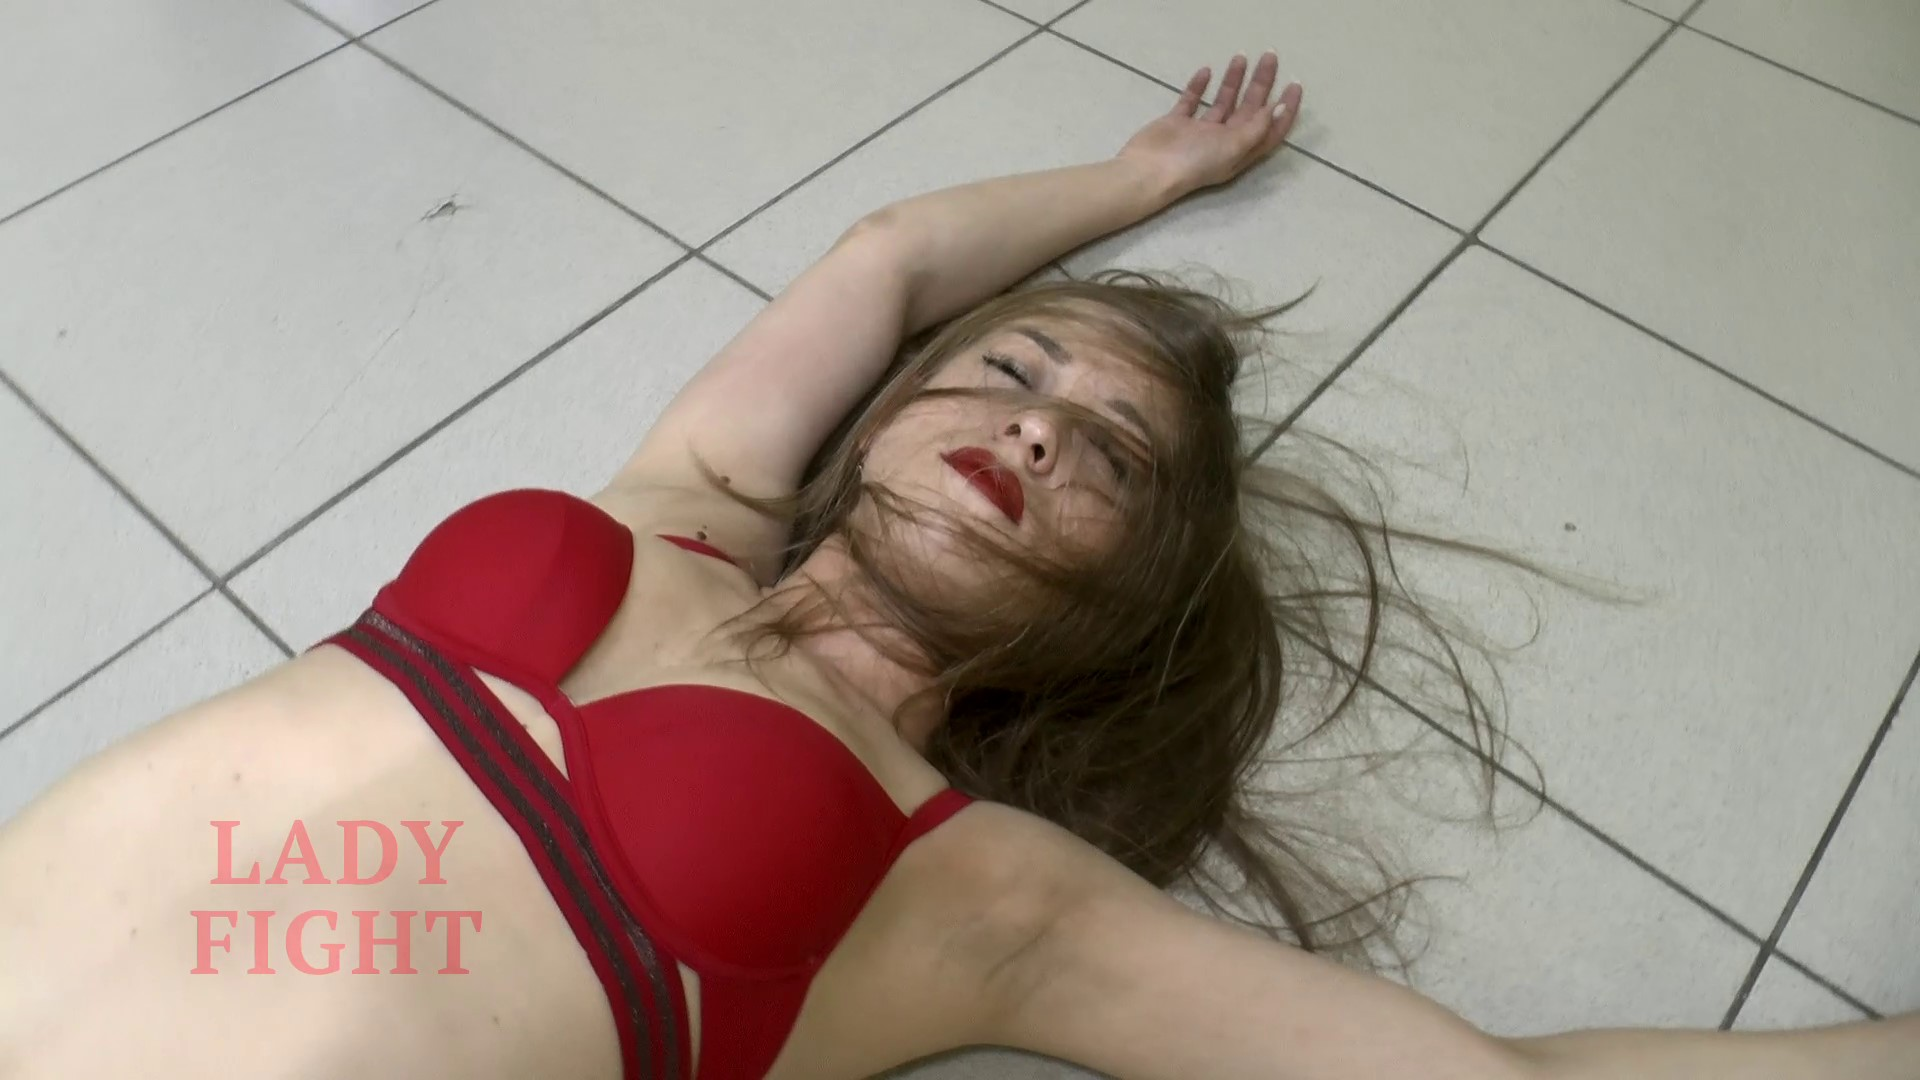 LADYFIGHT-Deadly-Wrestling-For-Lora-25